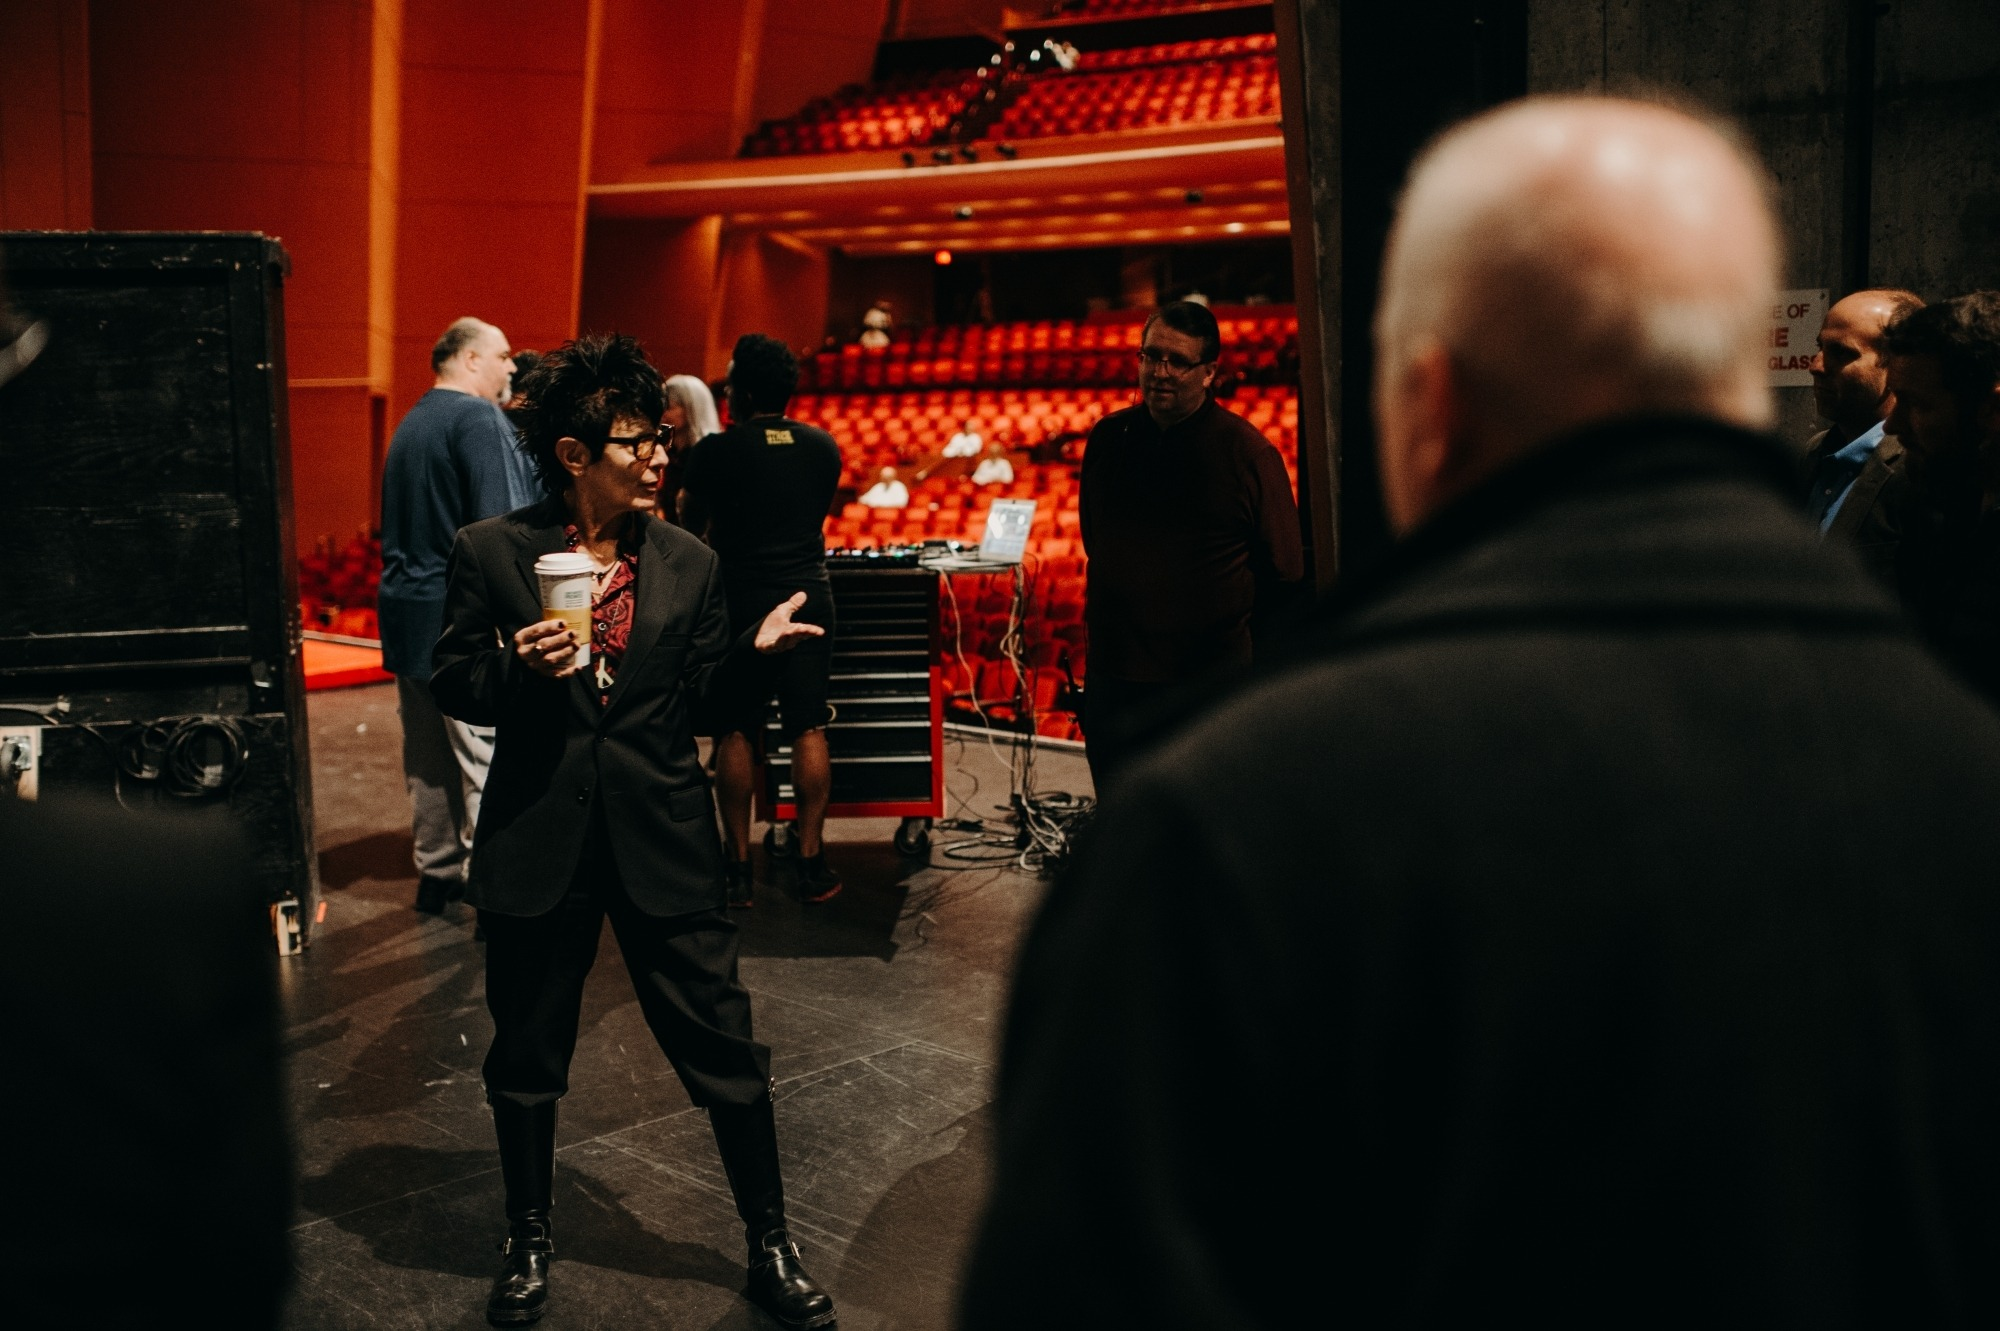 Elizabeth Streb wearing a black suit holding a cup of coffee gesturing to a group of people.